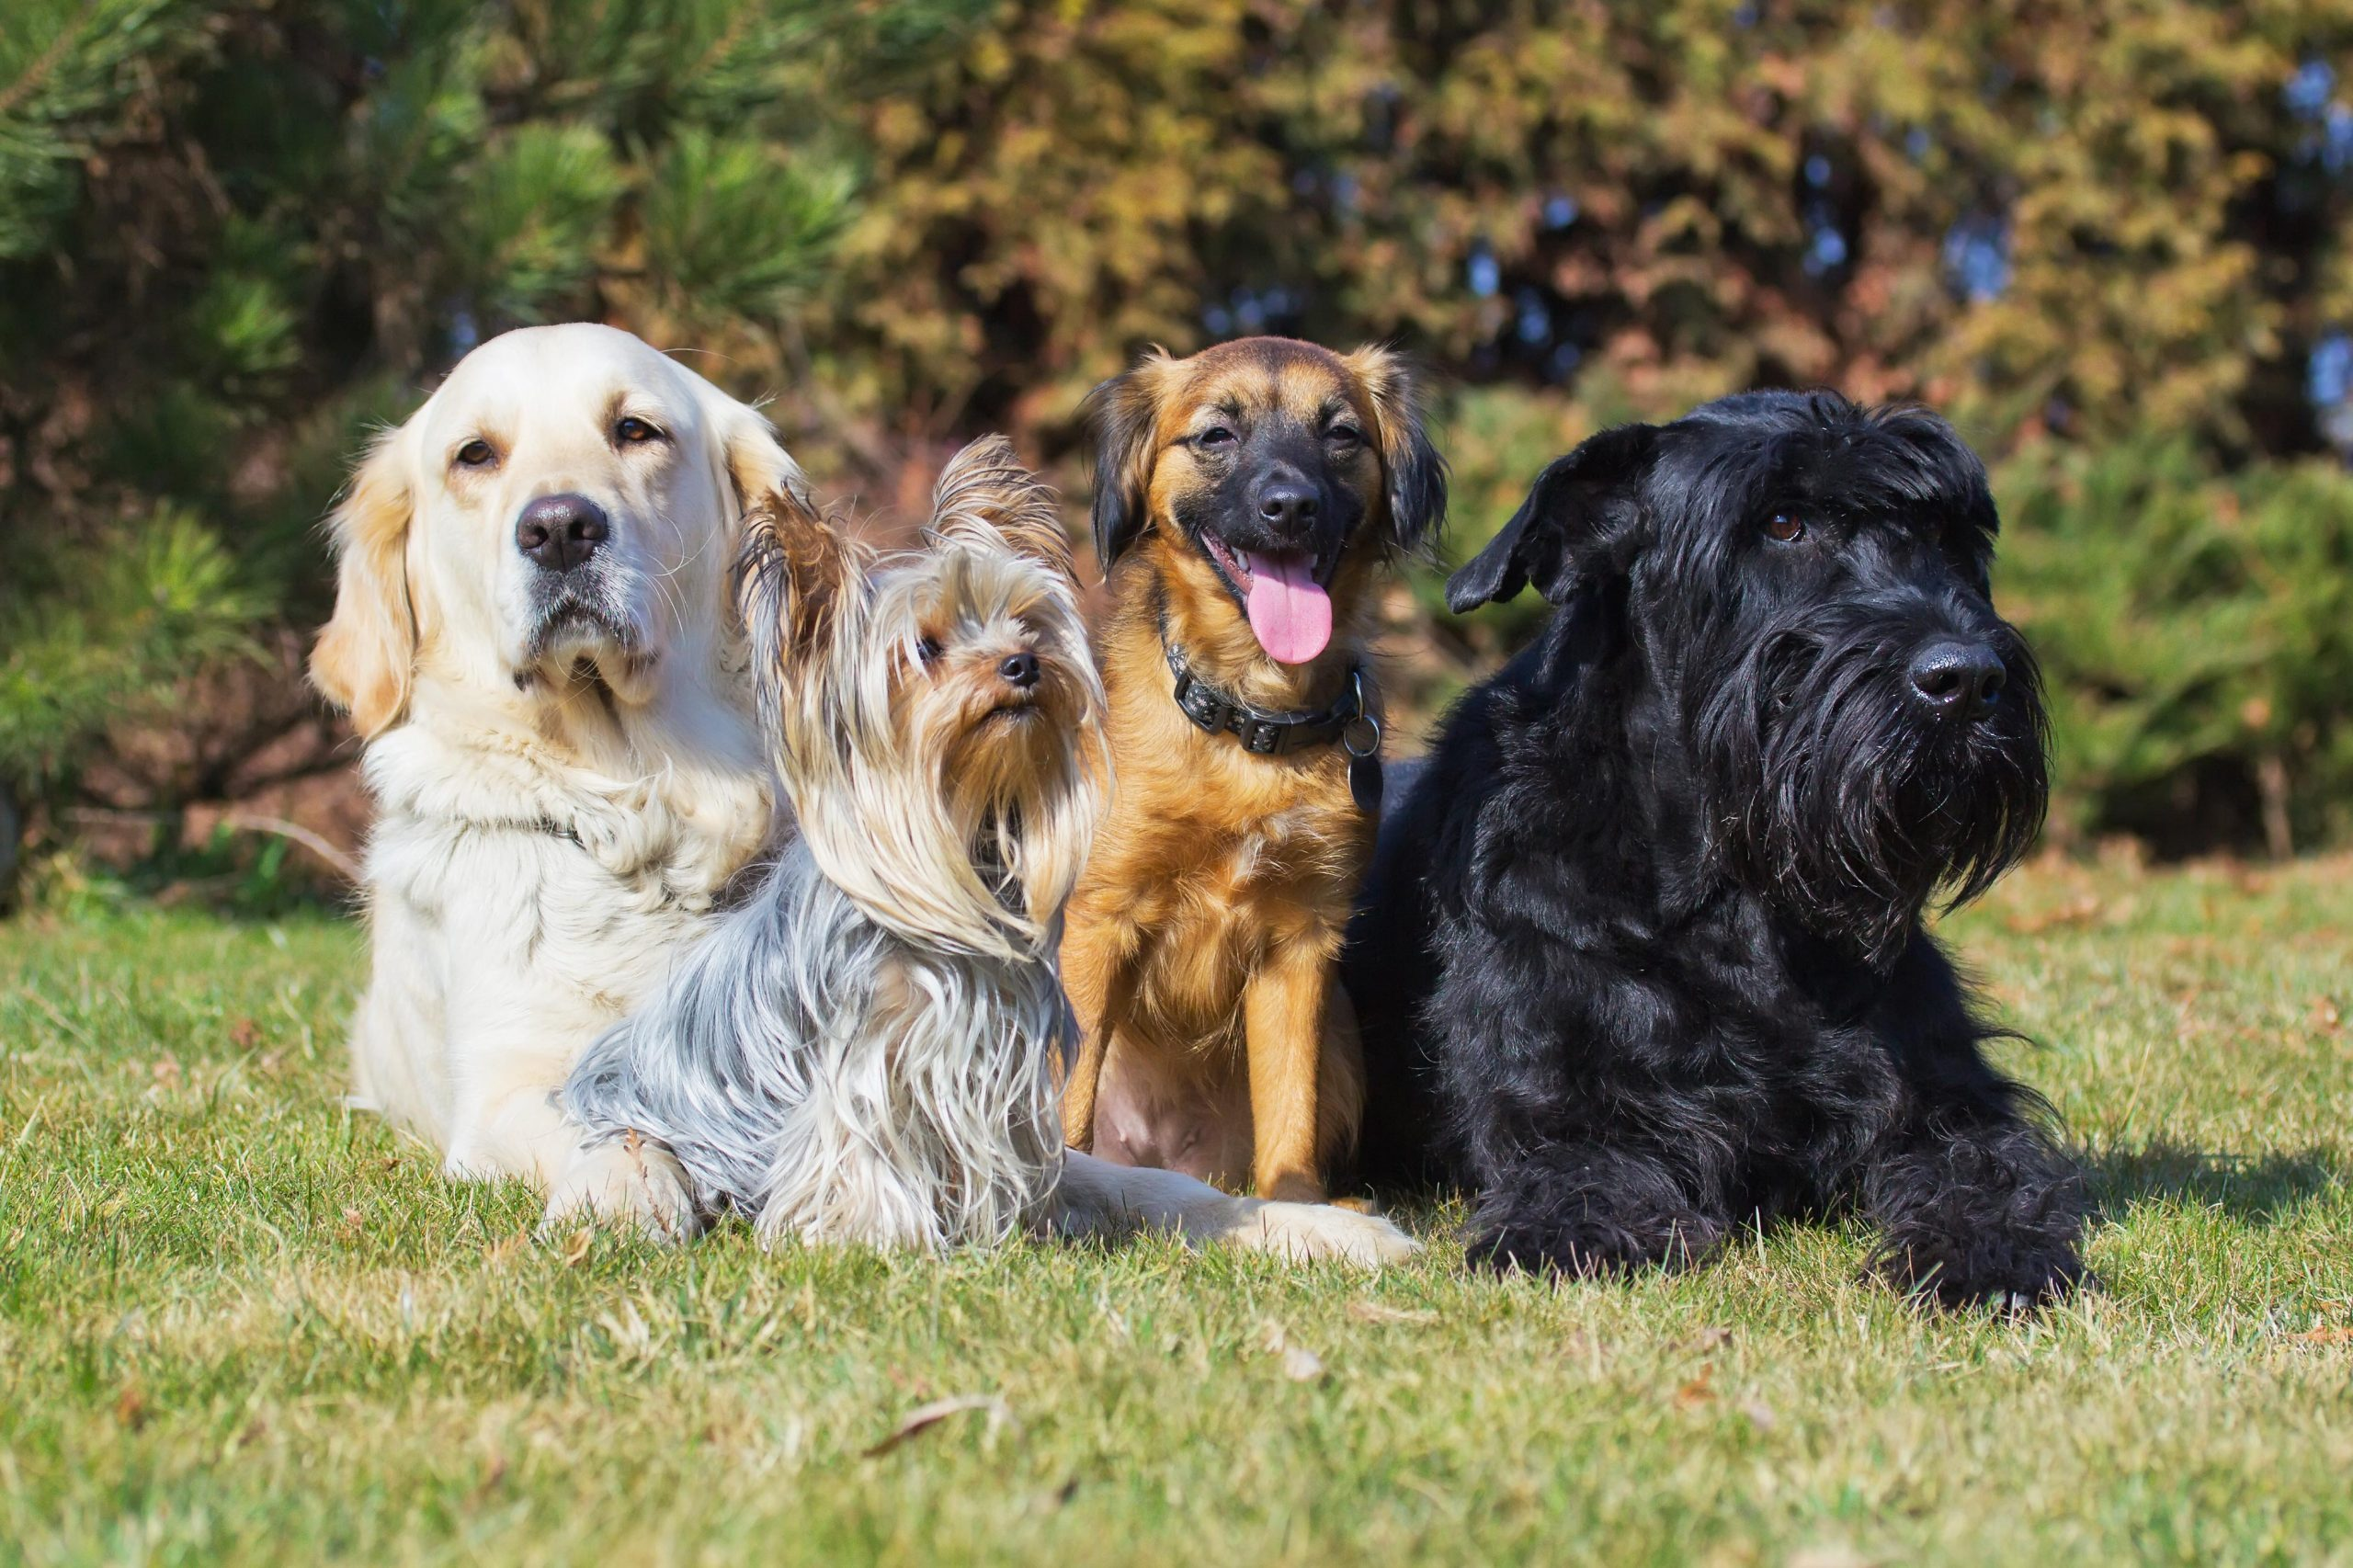 A group of four dogs of different breeds is lying on a green lawn.